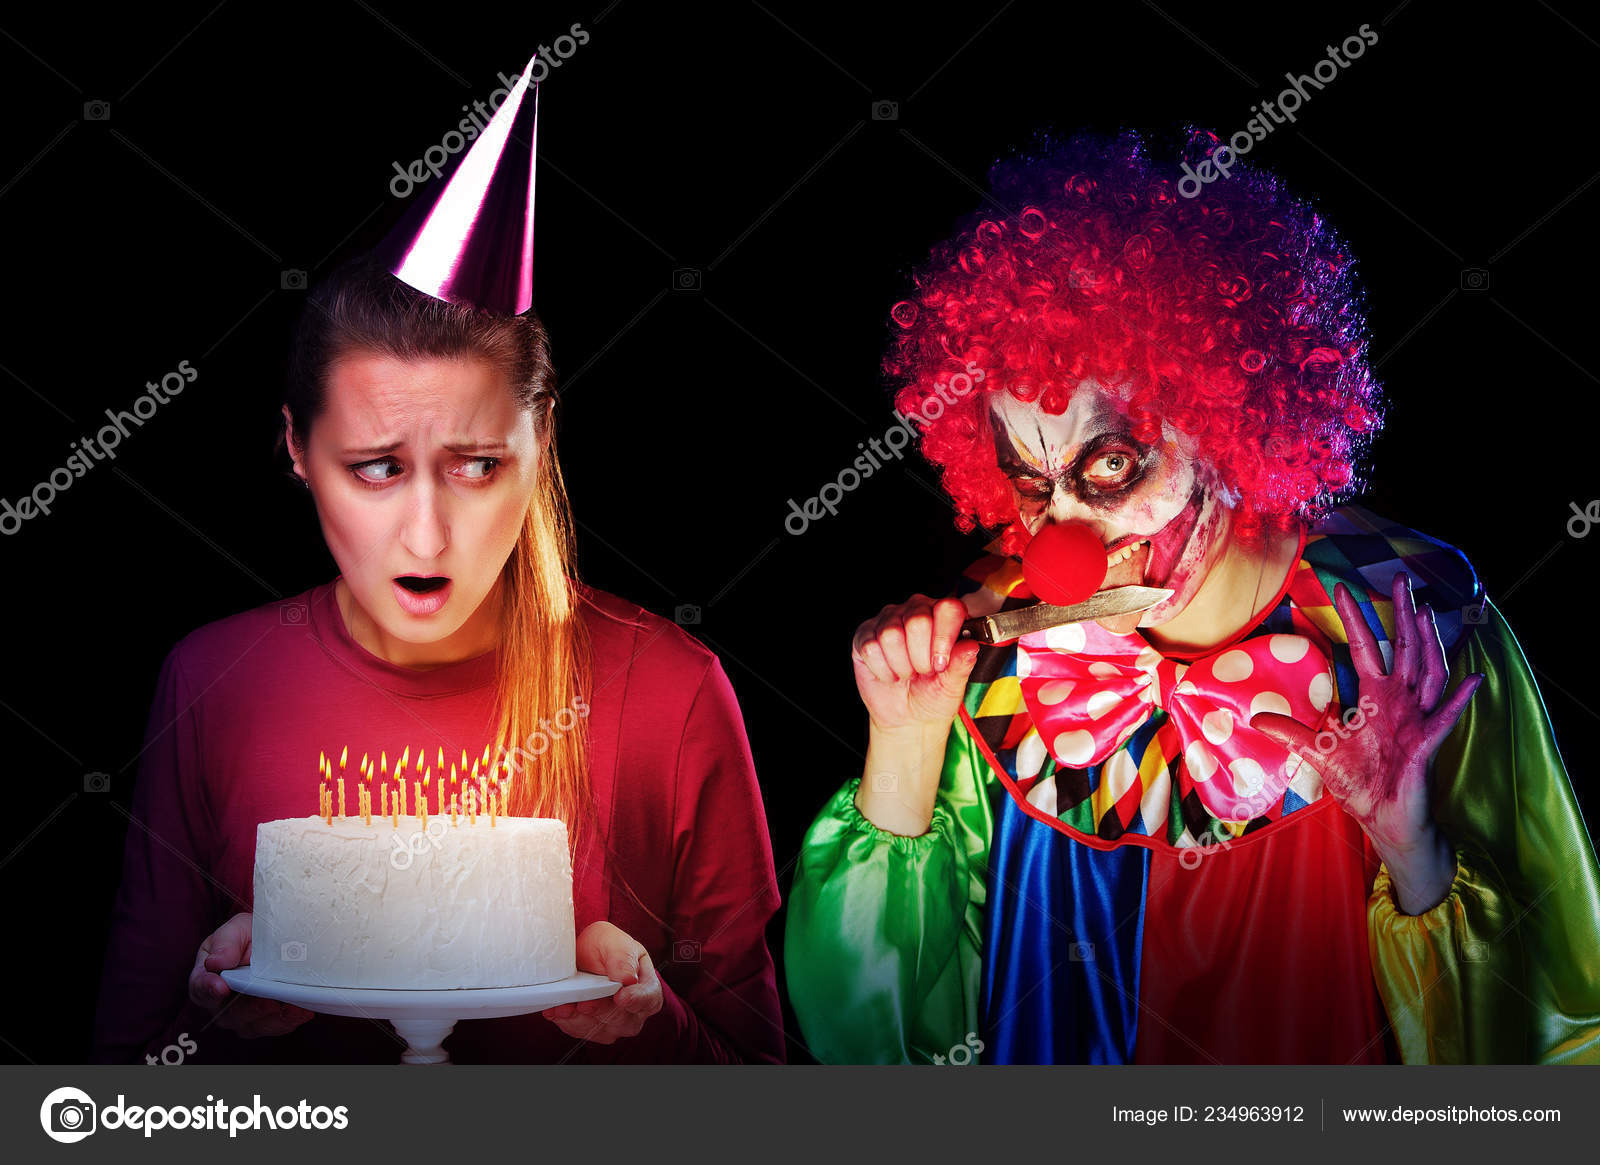 Terrific Pictures Scary Birthday Woman Holding Birthday Cake Looking Funny Birthday Cards Online Inifofree Goldxyz